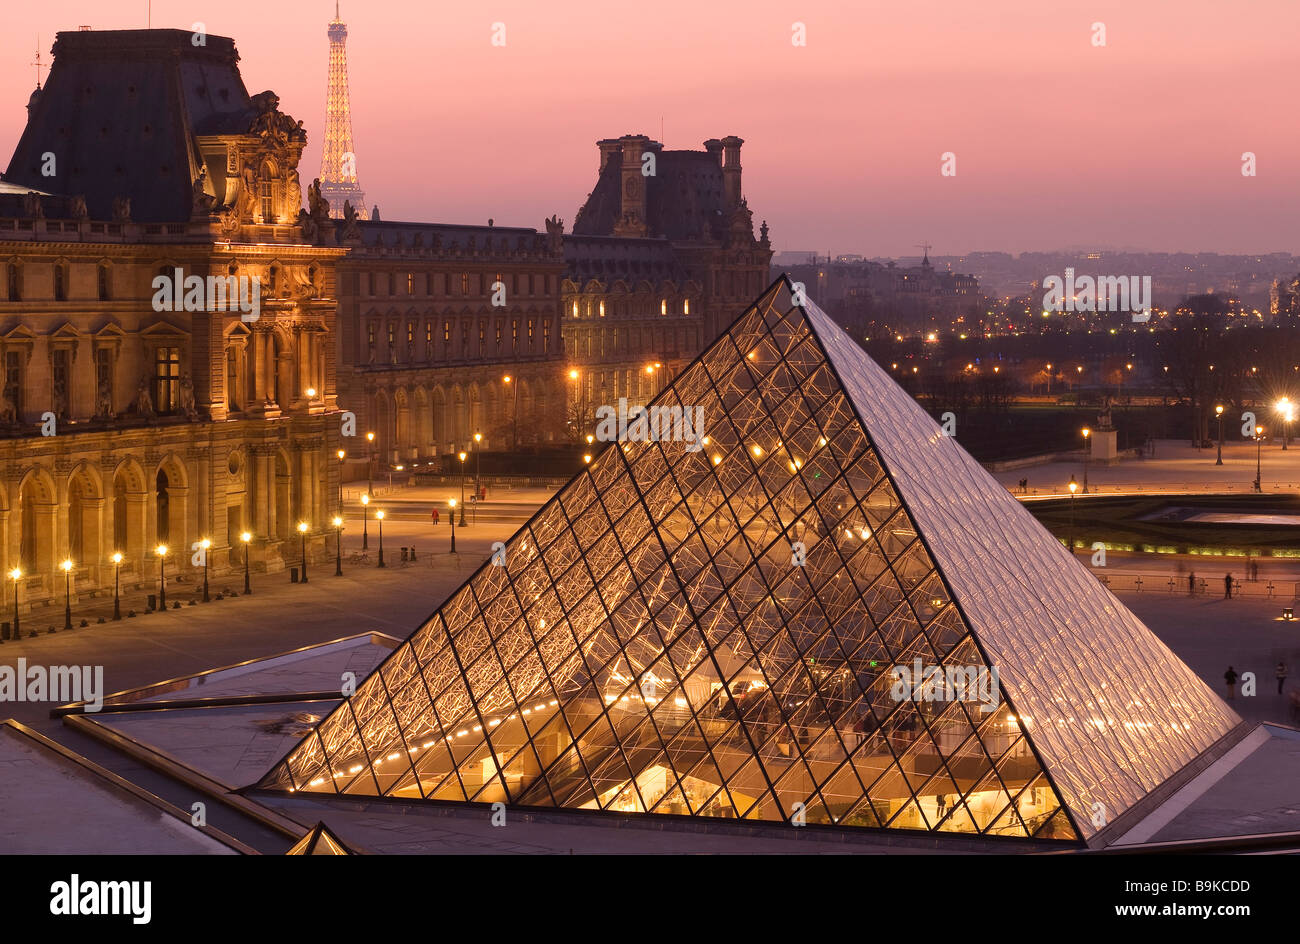 France paris the louvre museum and louvre pyramid by - Louvre architekt ...